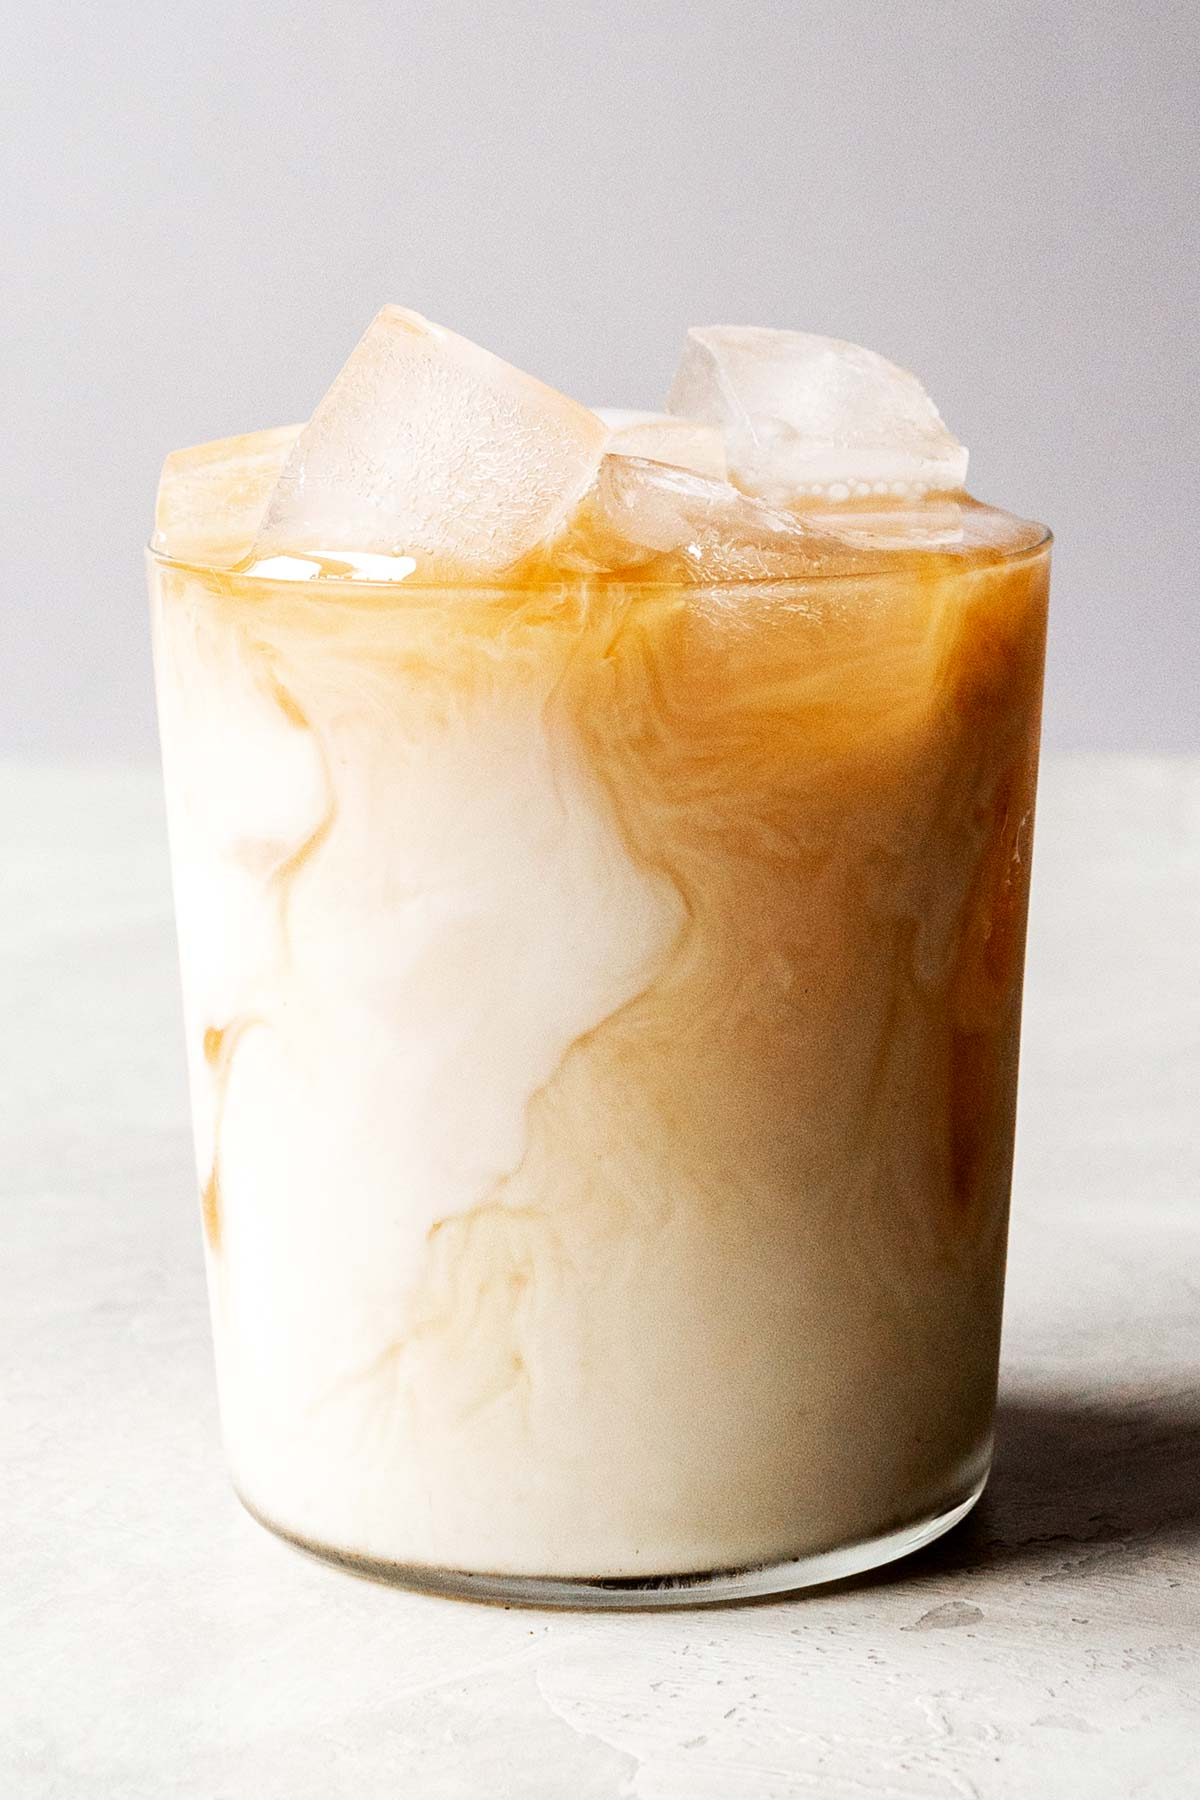 Iced chai latte in a glass with swirls of milk.